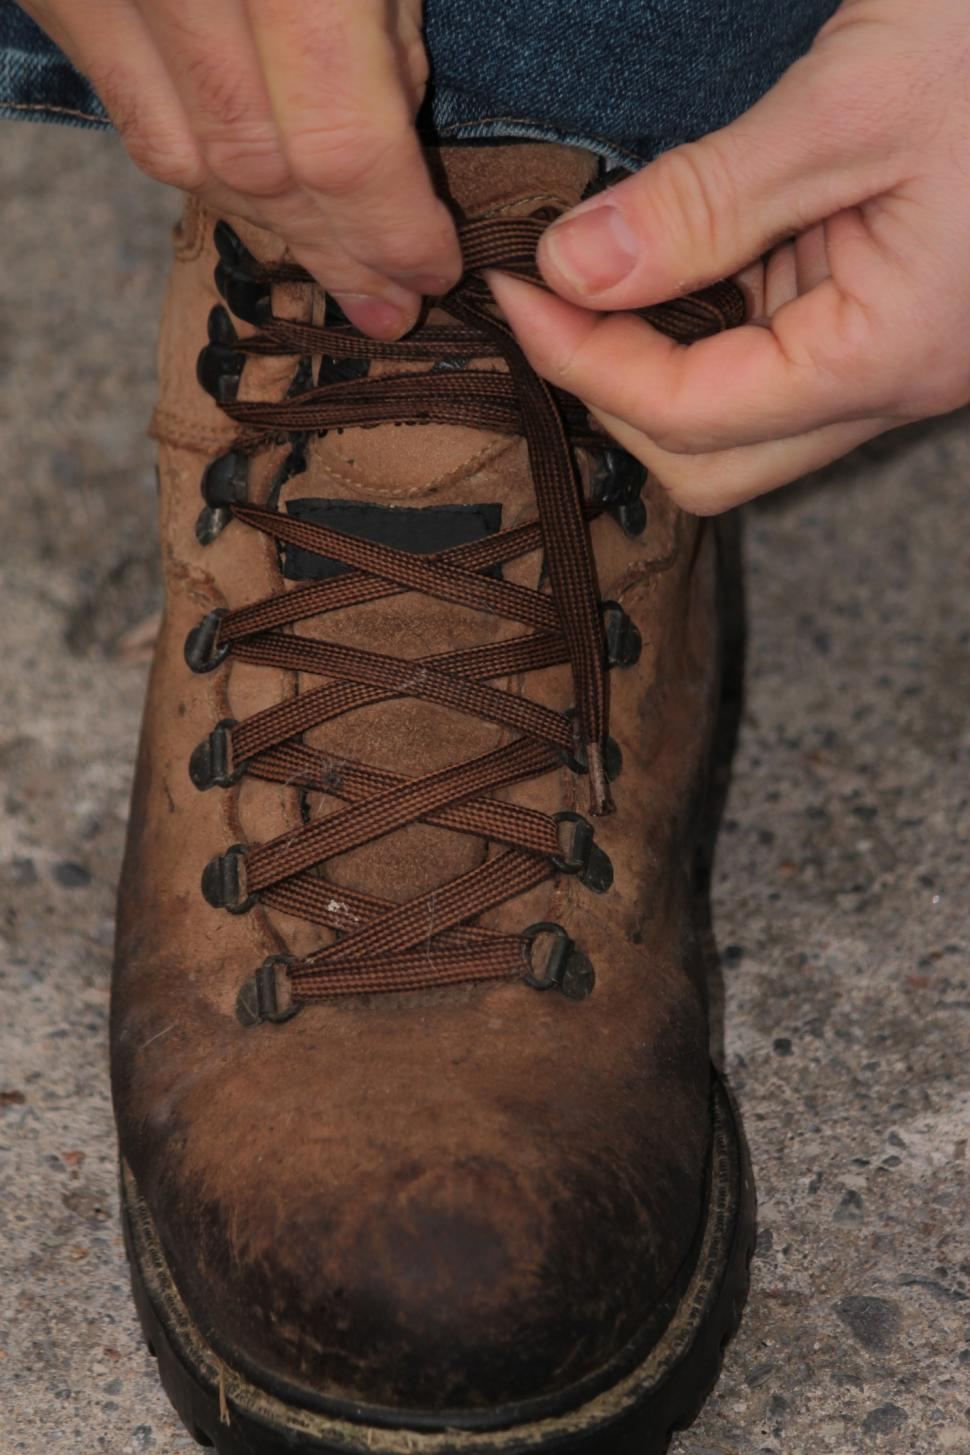 Download Free Stock HD Photo of Tying work boots Online